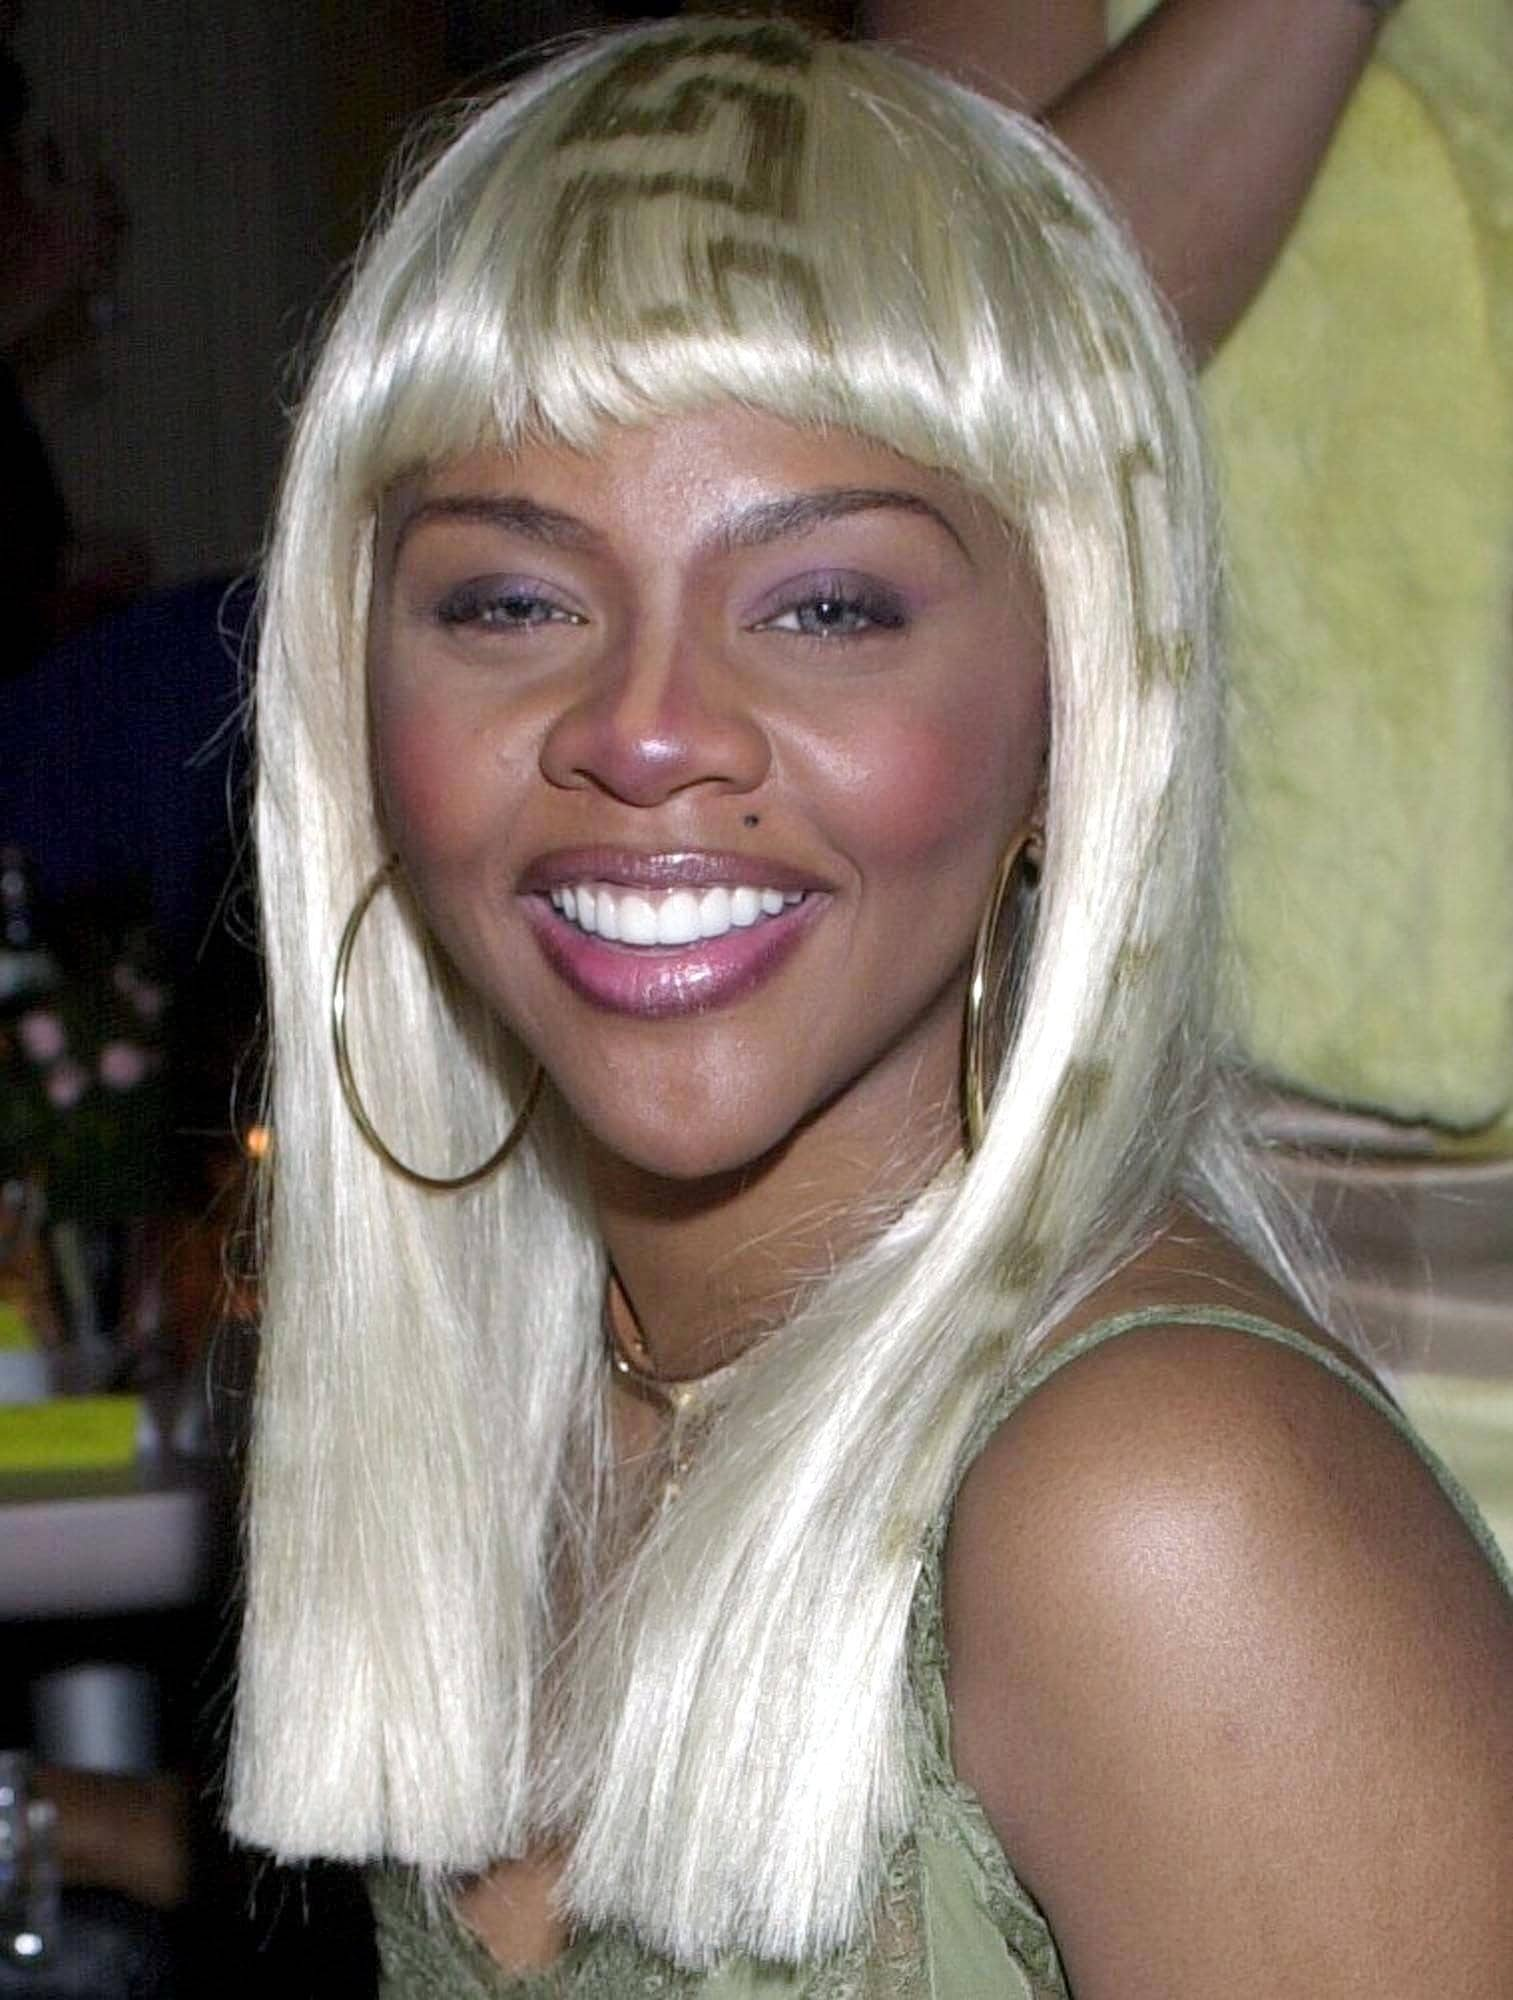 Lil Kim with a blonde wig with bangs and Versace print